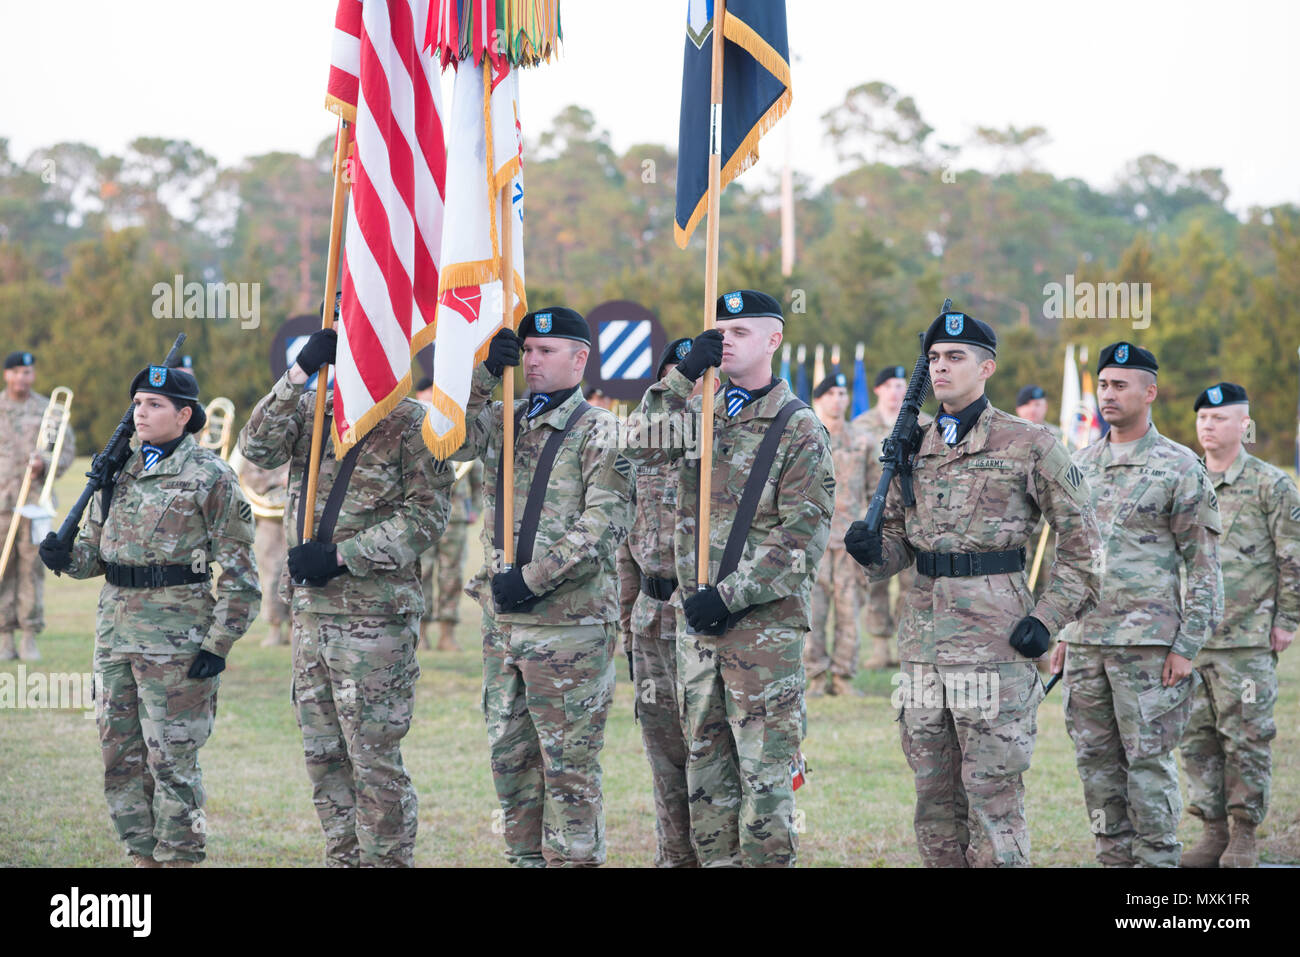 The 3rd Infantry Division color guard participates in the annual Twilight Tattoo during Marne Week at Fort Stewart Nov. 15, 2016. Twilight Tattoo is a ceremony honoring veterans and family members. (Photo by LTC Brian J. Fickel) - Stock Image